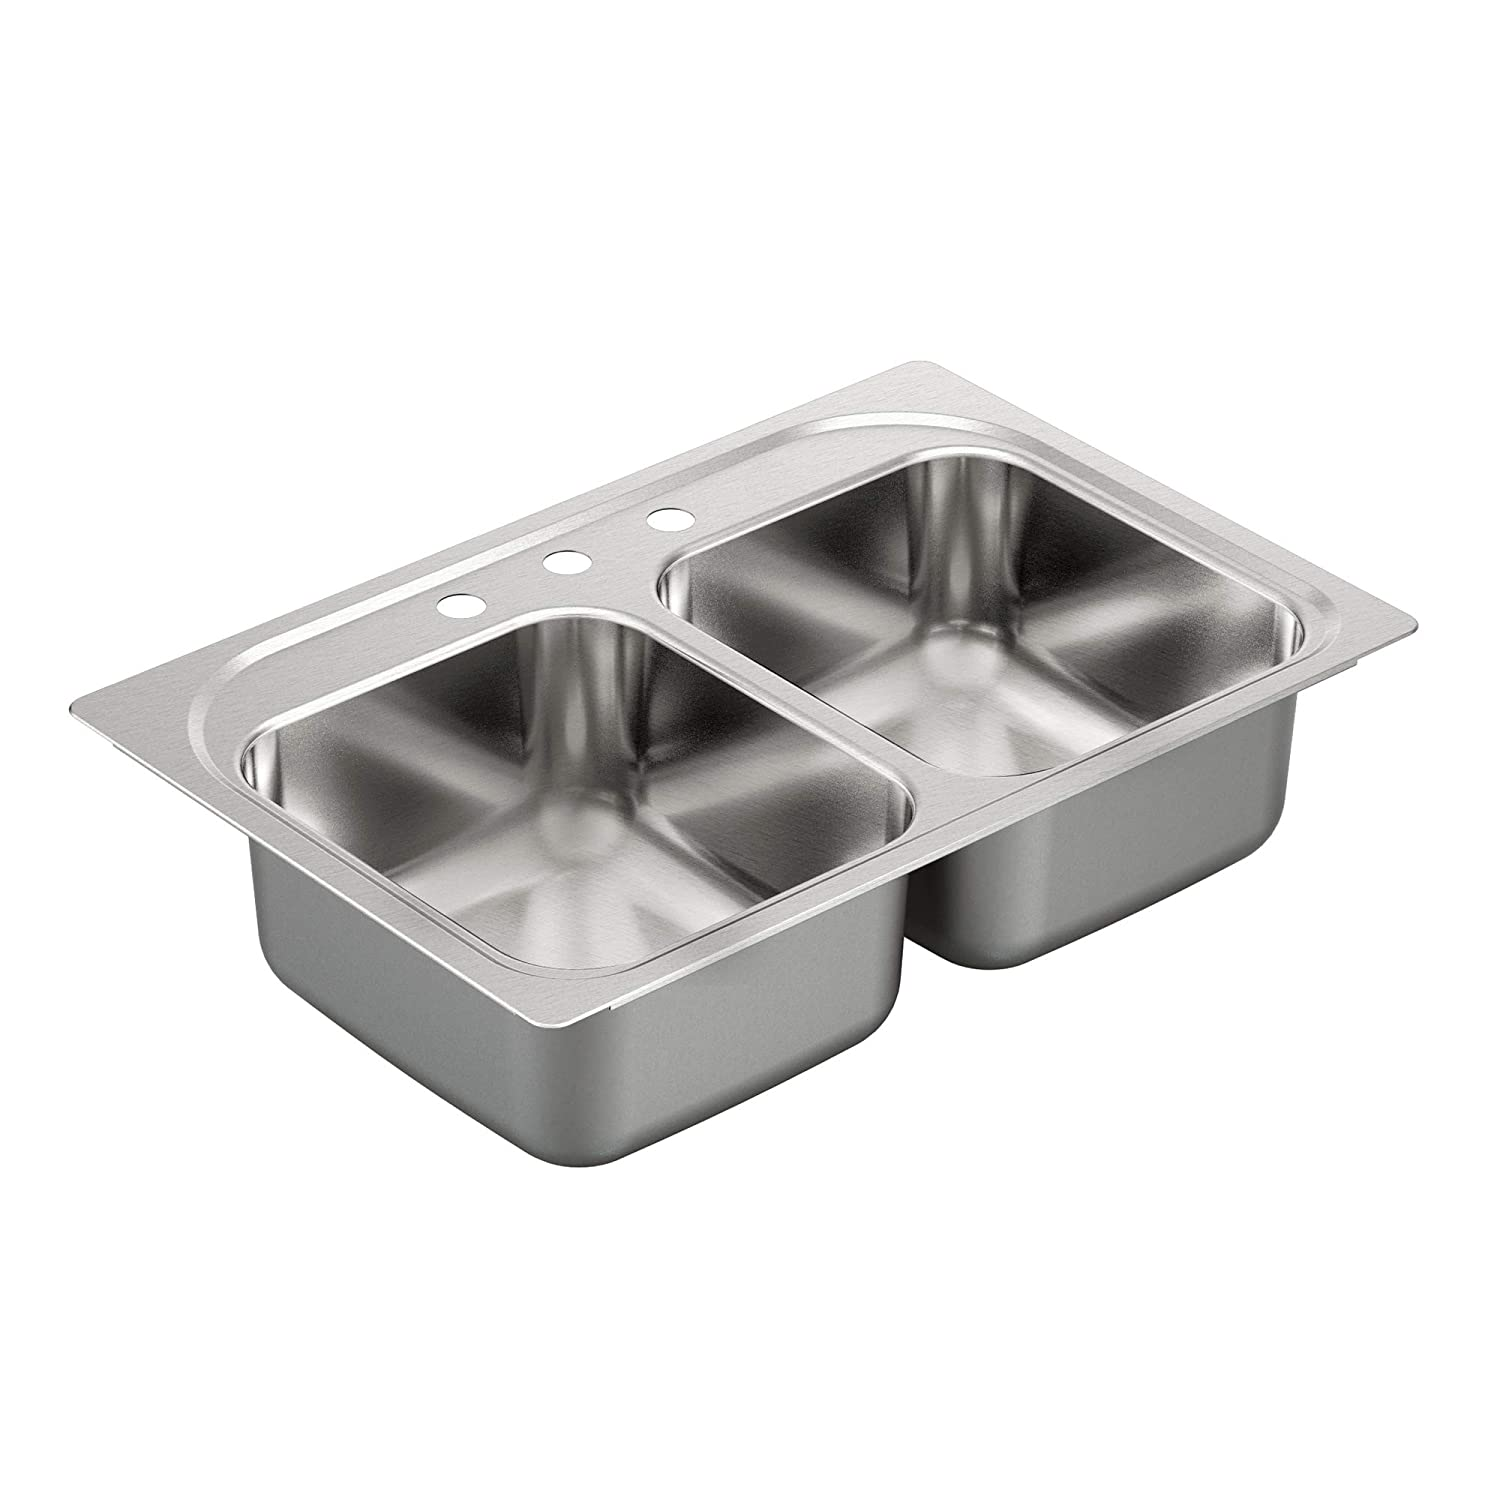 Moen G222133 2200 Series 22 Gauge Double Bowl Drop In Sink, Stainless Steel